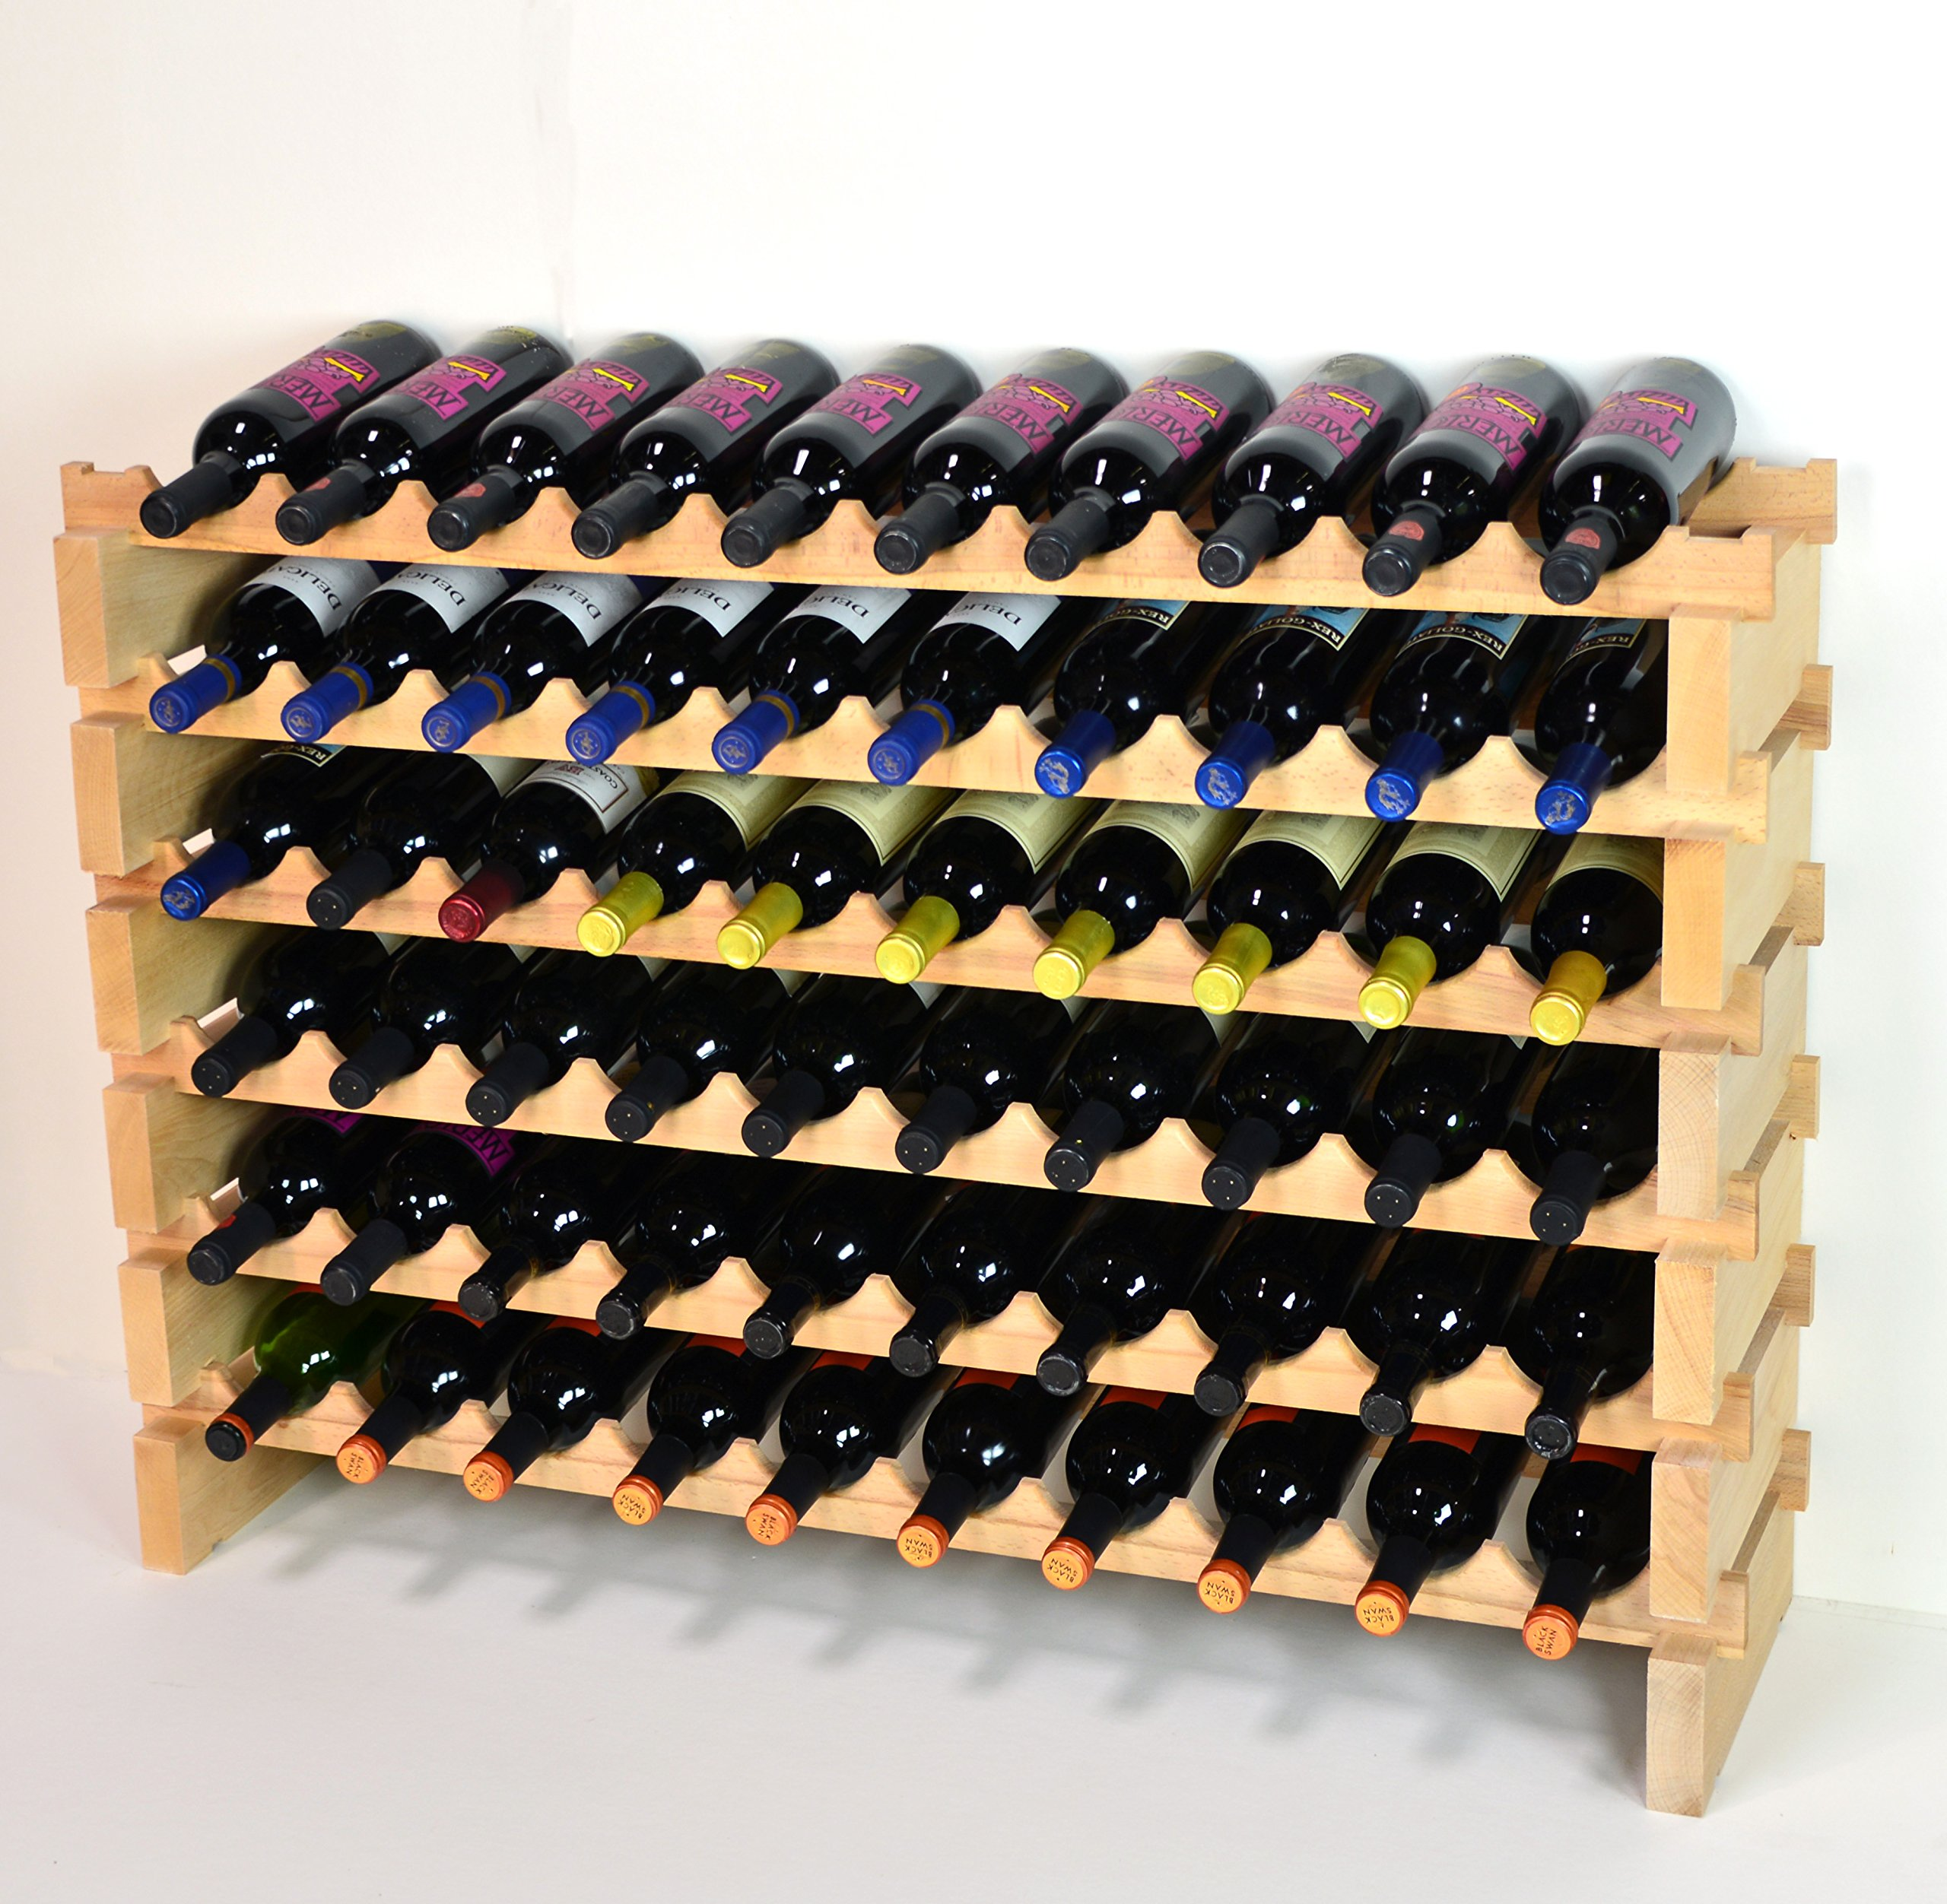 Modular Wine Rack Beechwood 40-120 Bottle Capacity 10 Bottles Across up to 12 Rows Newest Improved Model (60 Bottles - 6 Rows)